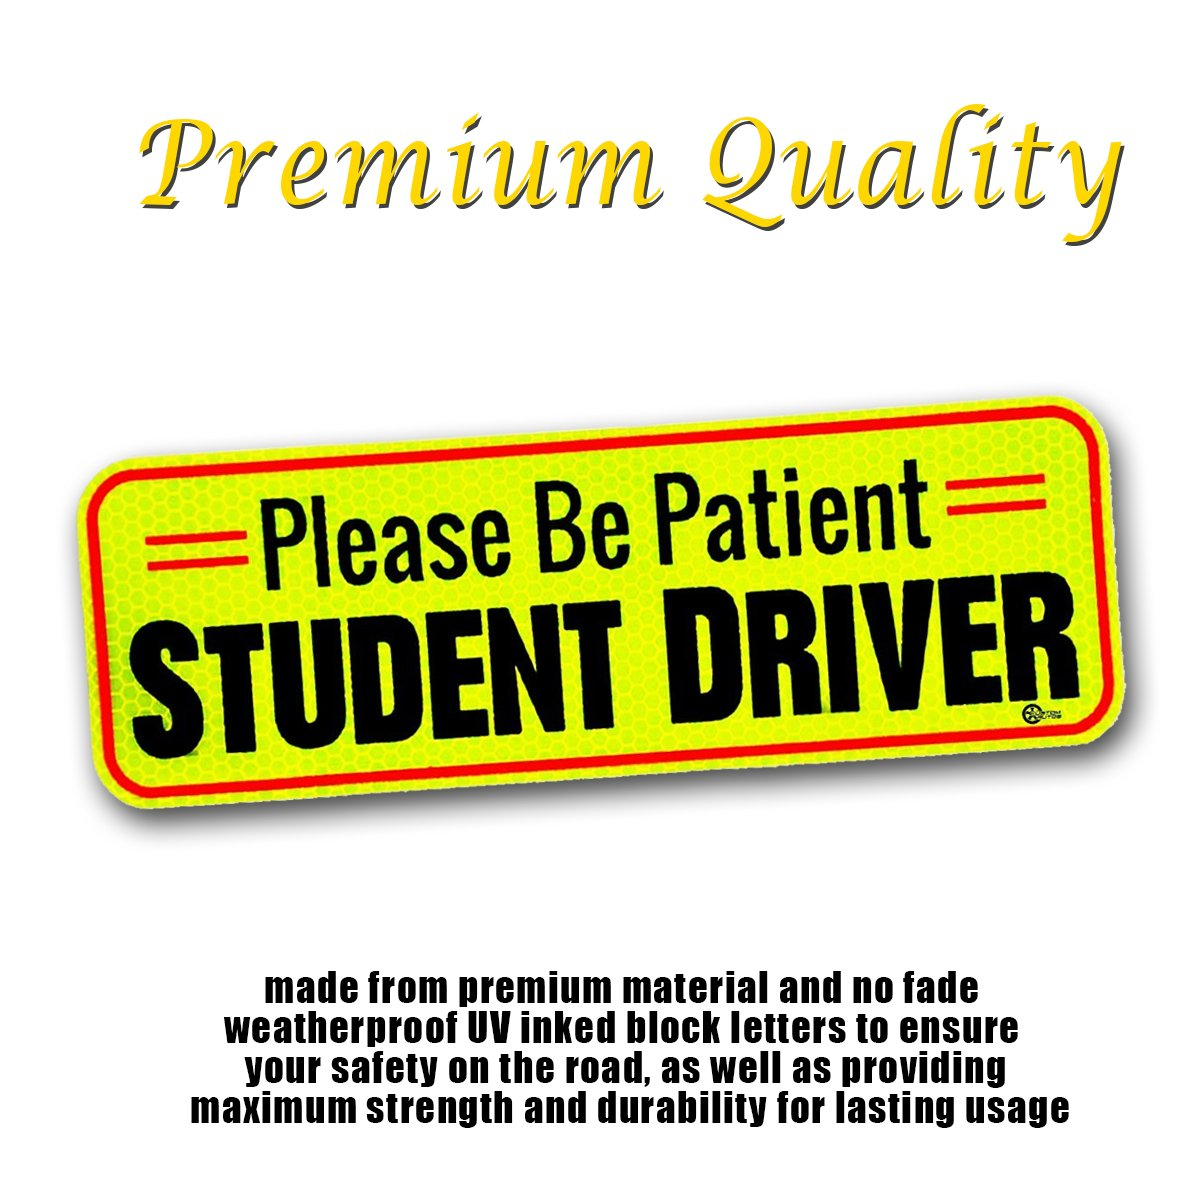 VaygWay Car Student Driver Magnet- Driver Bumper Decal Side Magnet- Please Be Patient Student Driver- Reflective Sign 1 Pk Auto- Kids Teens Beginners Safety Sign Custom Autos SDDF